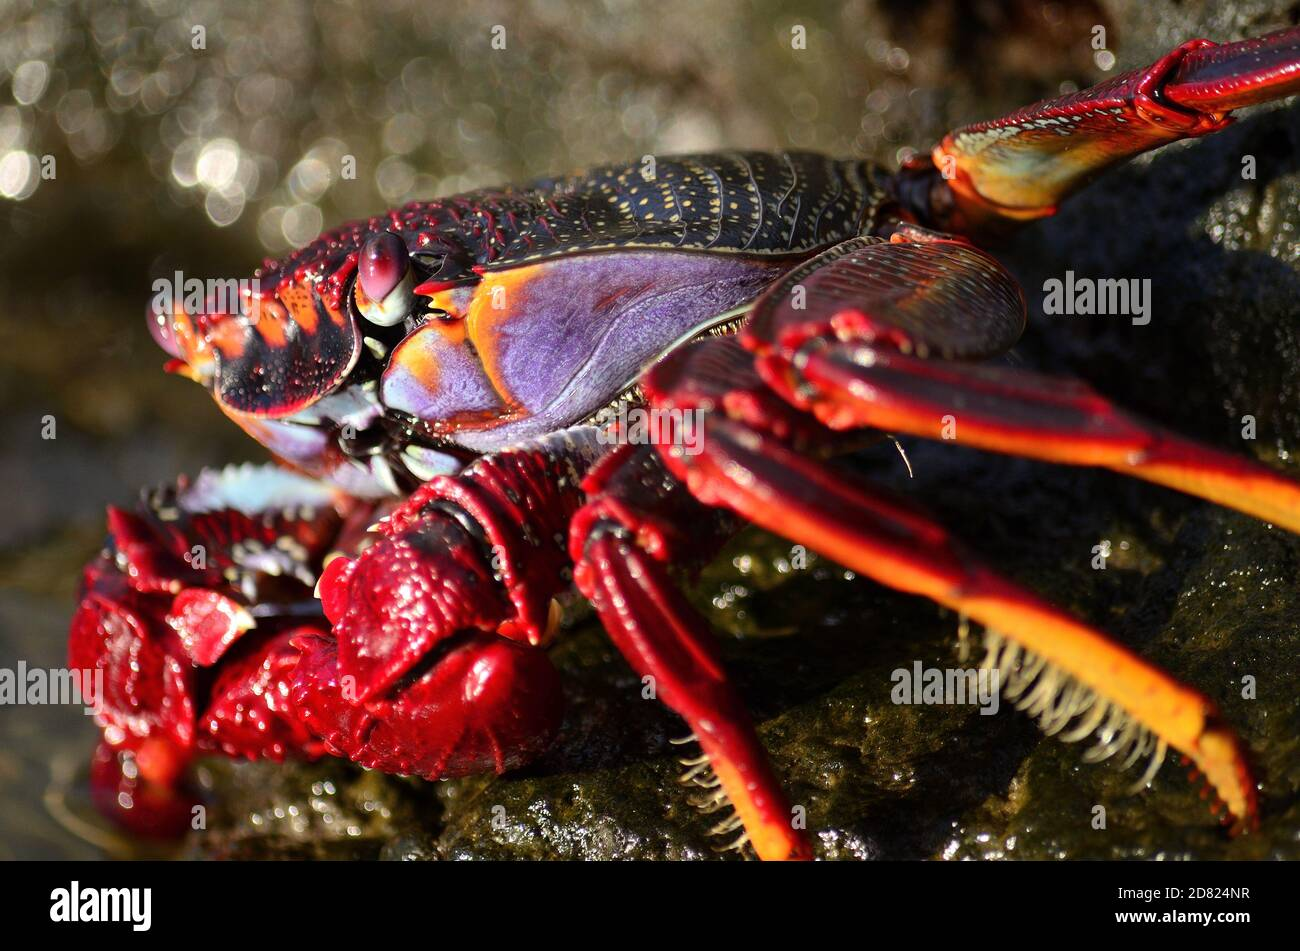 Closeup of beautiful red crab on the rocks at low tide, Grapsus adscensionis Stock Photo